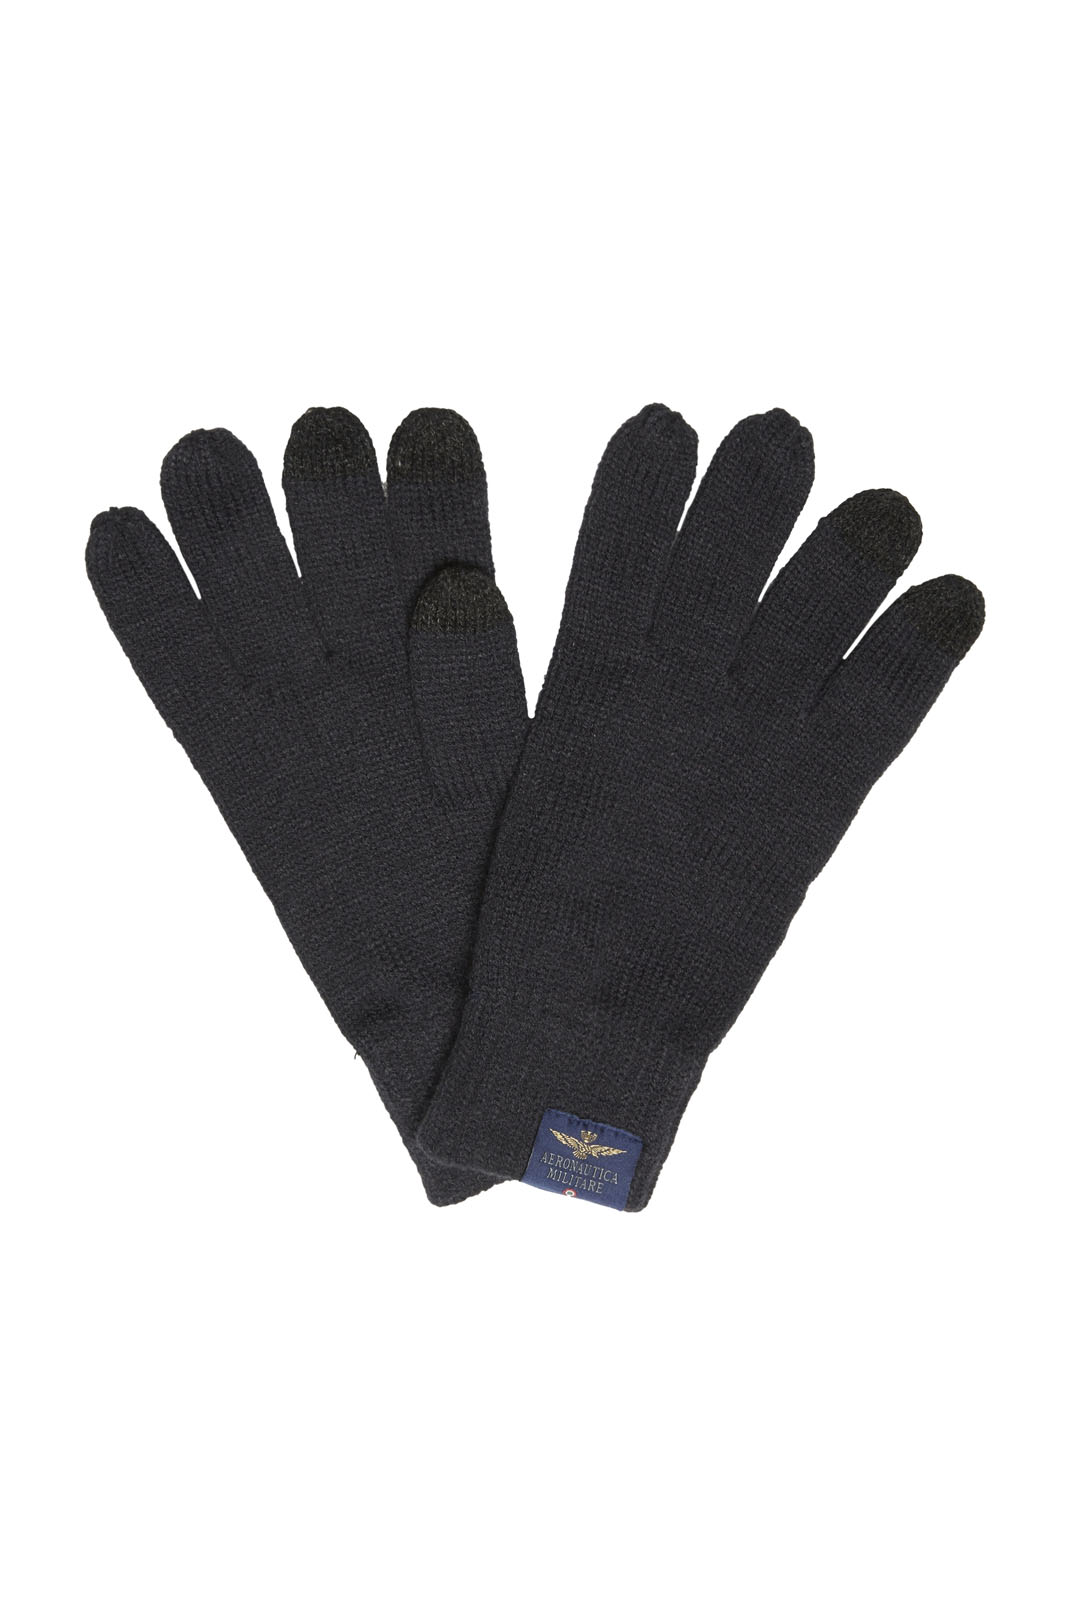 Knitted gloves with logo                 1